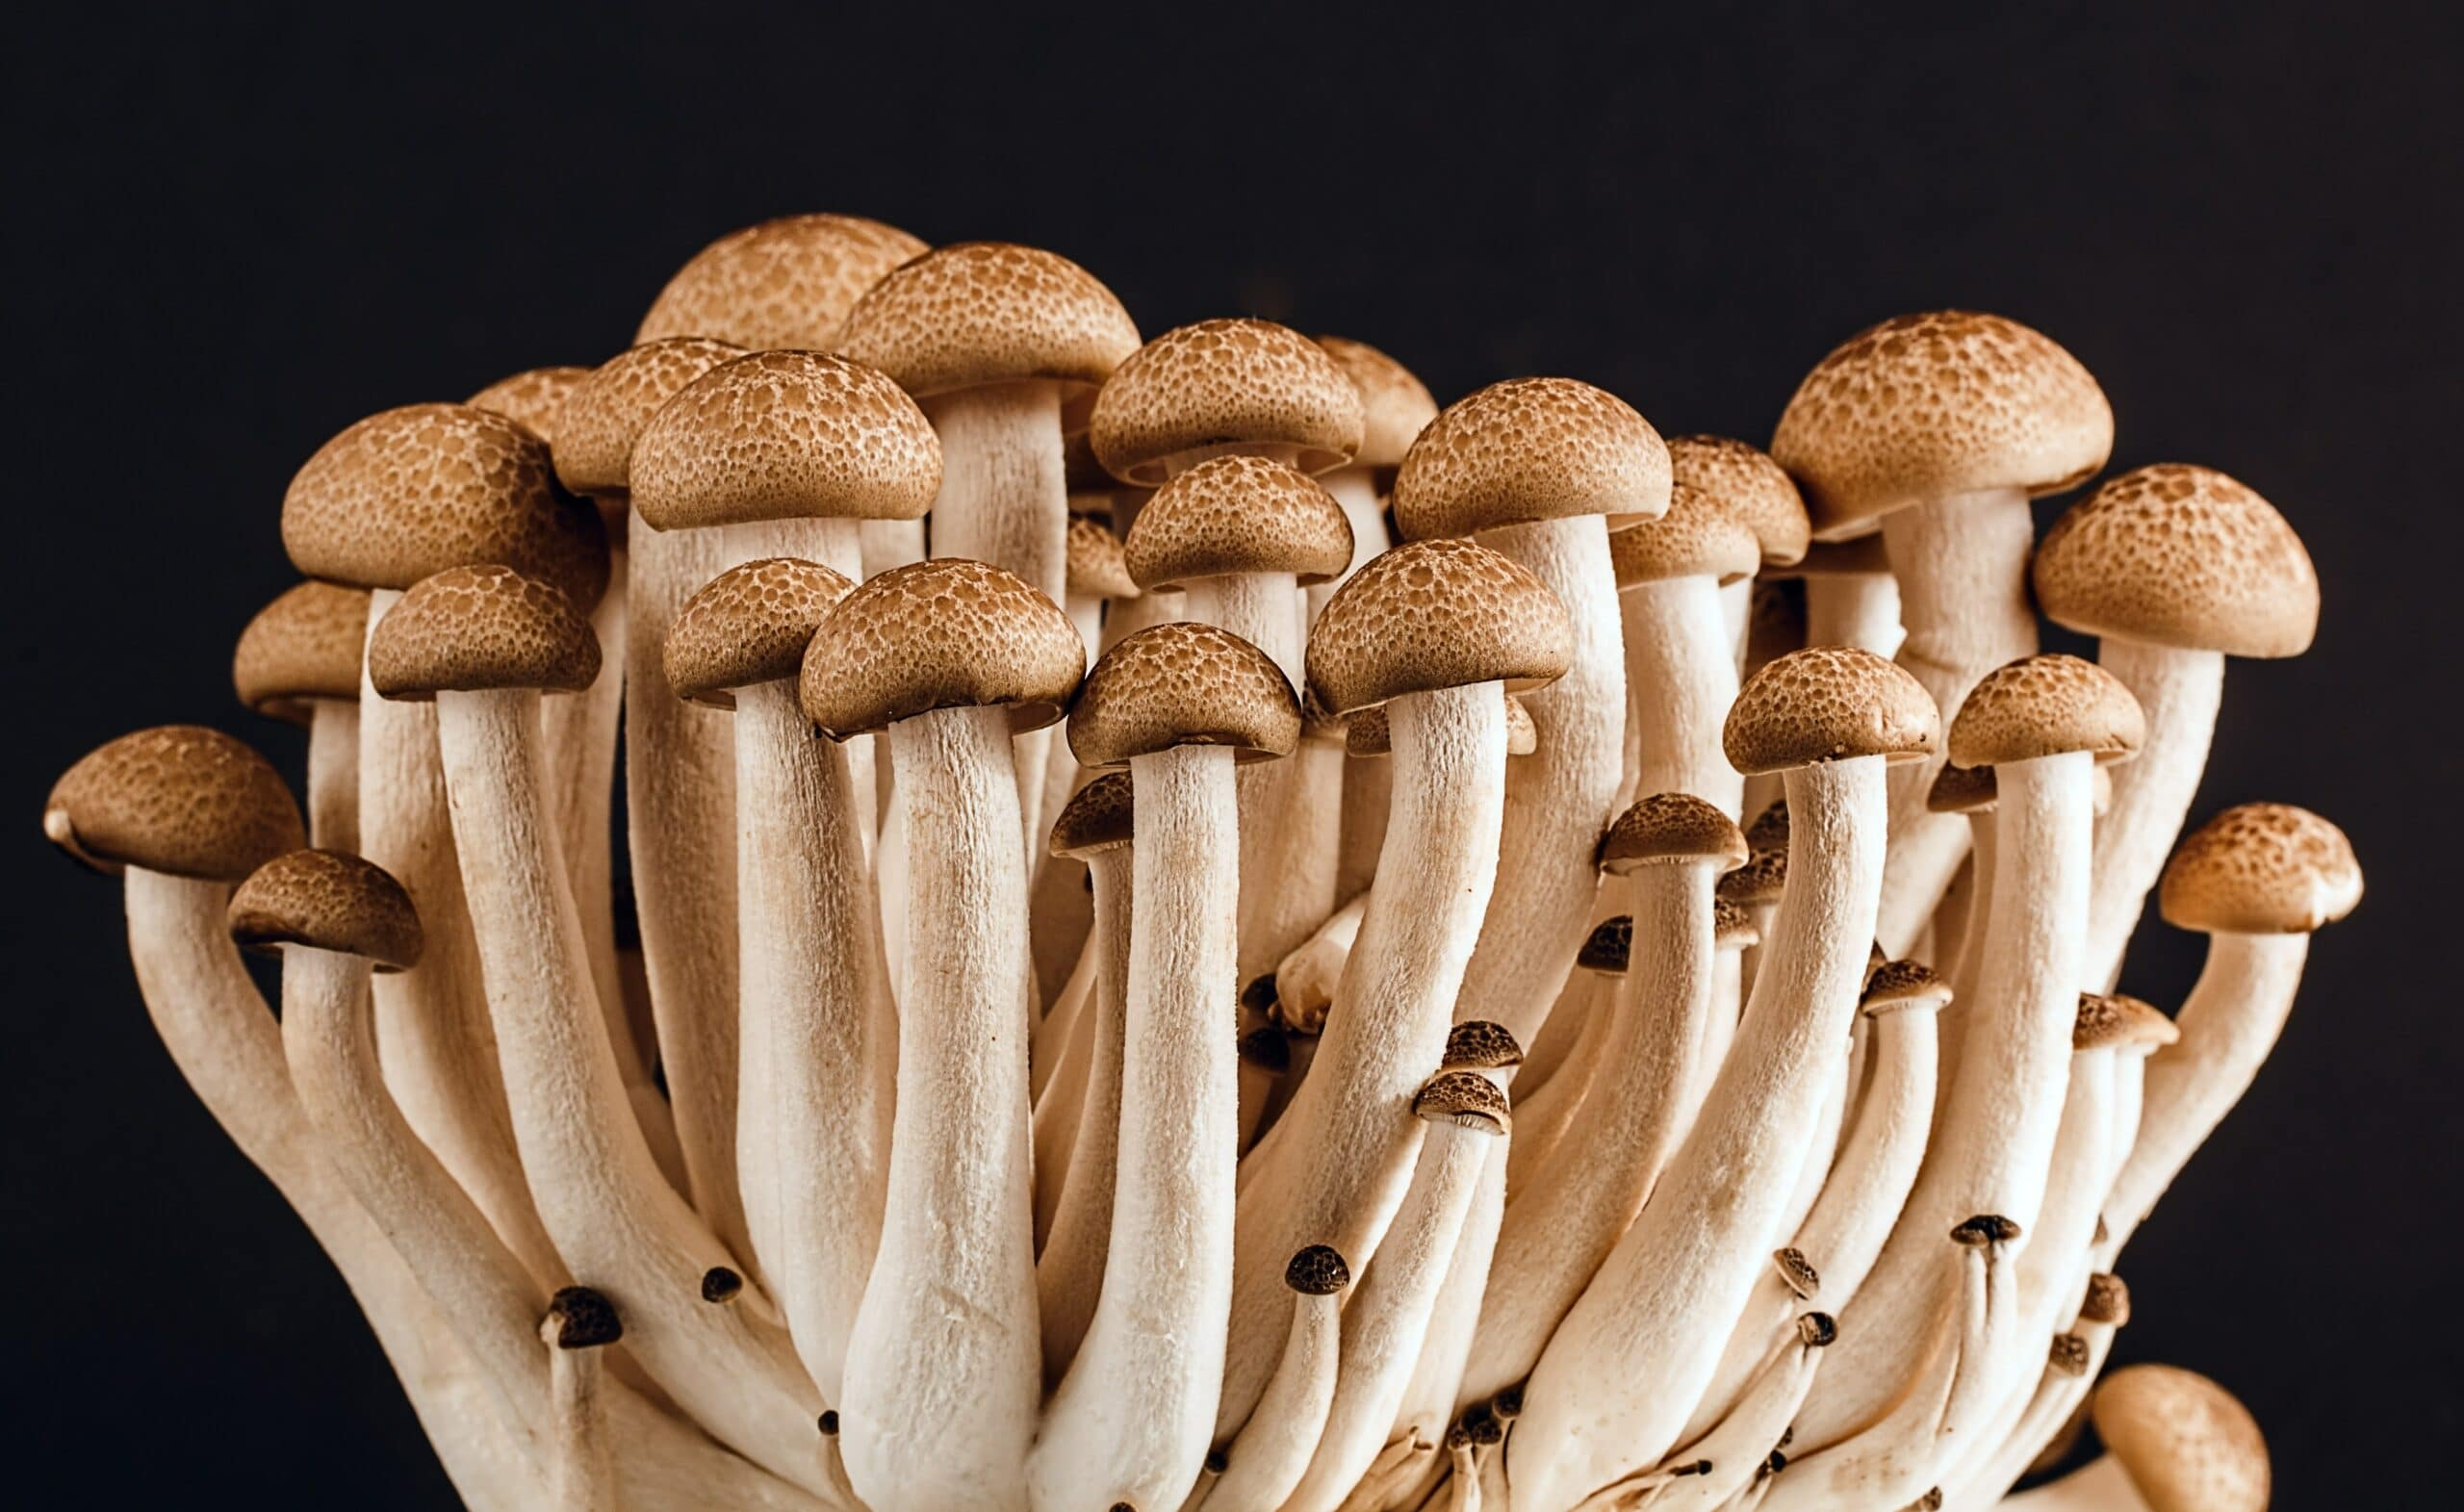 How To Start Growing Mushrooms at home? Mushrooms are easy to grow, thanks to the availability of easy-to-use grow kits. Go back to nature now. Cluster of mushrooms together on a black background.